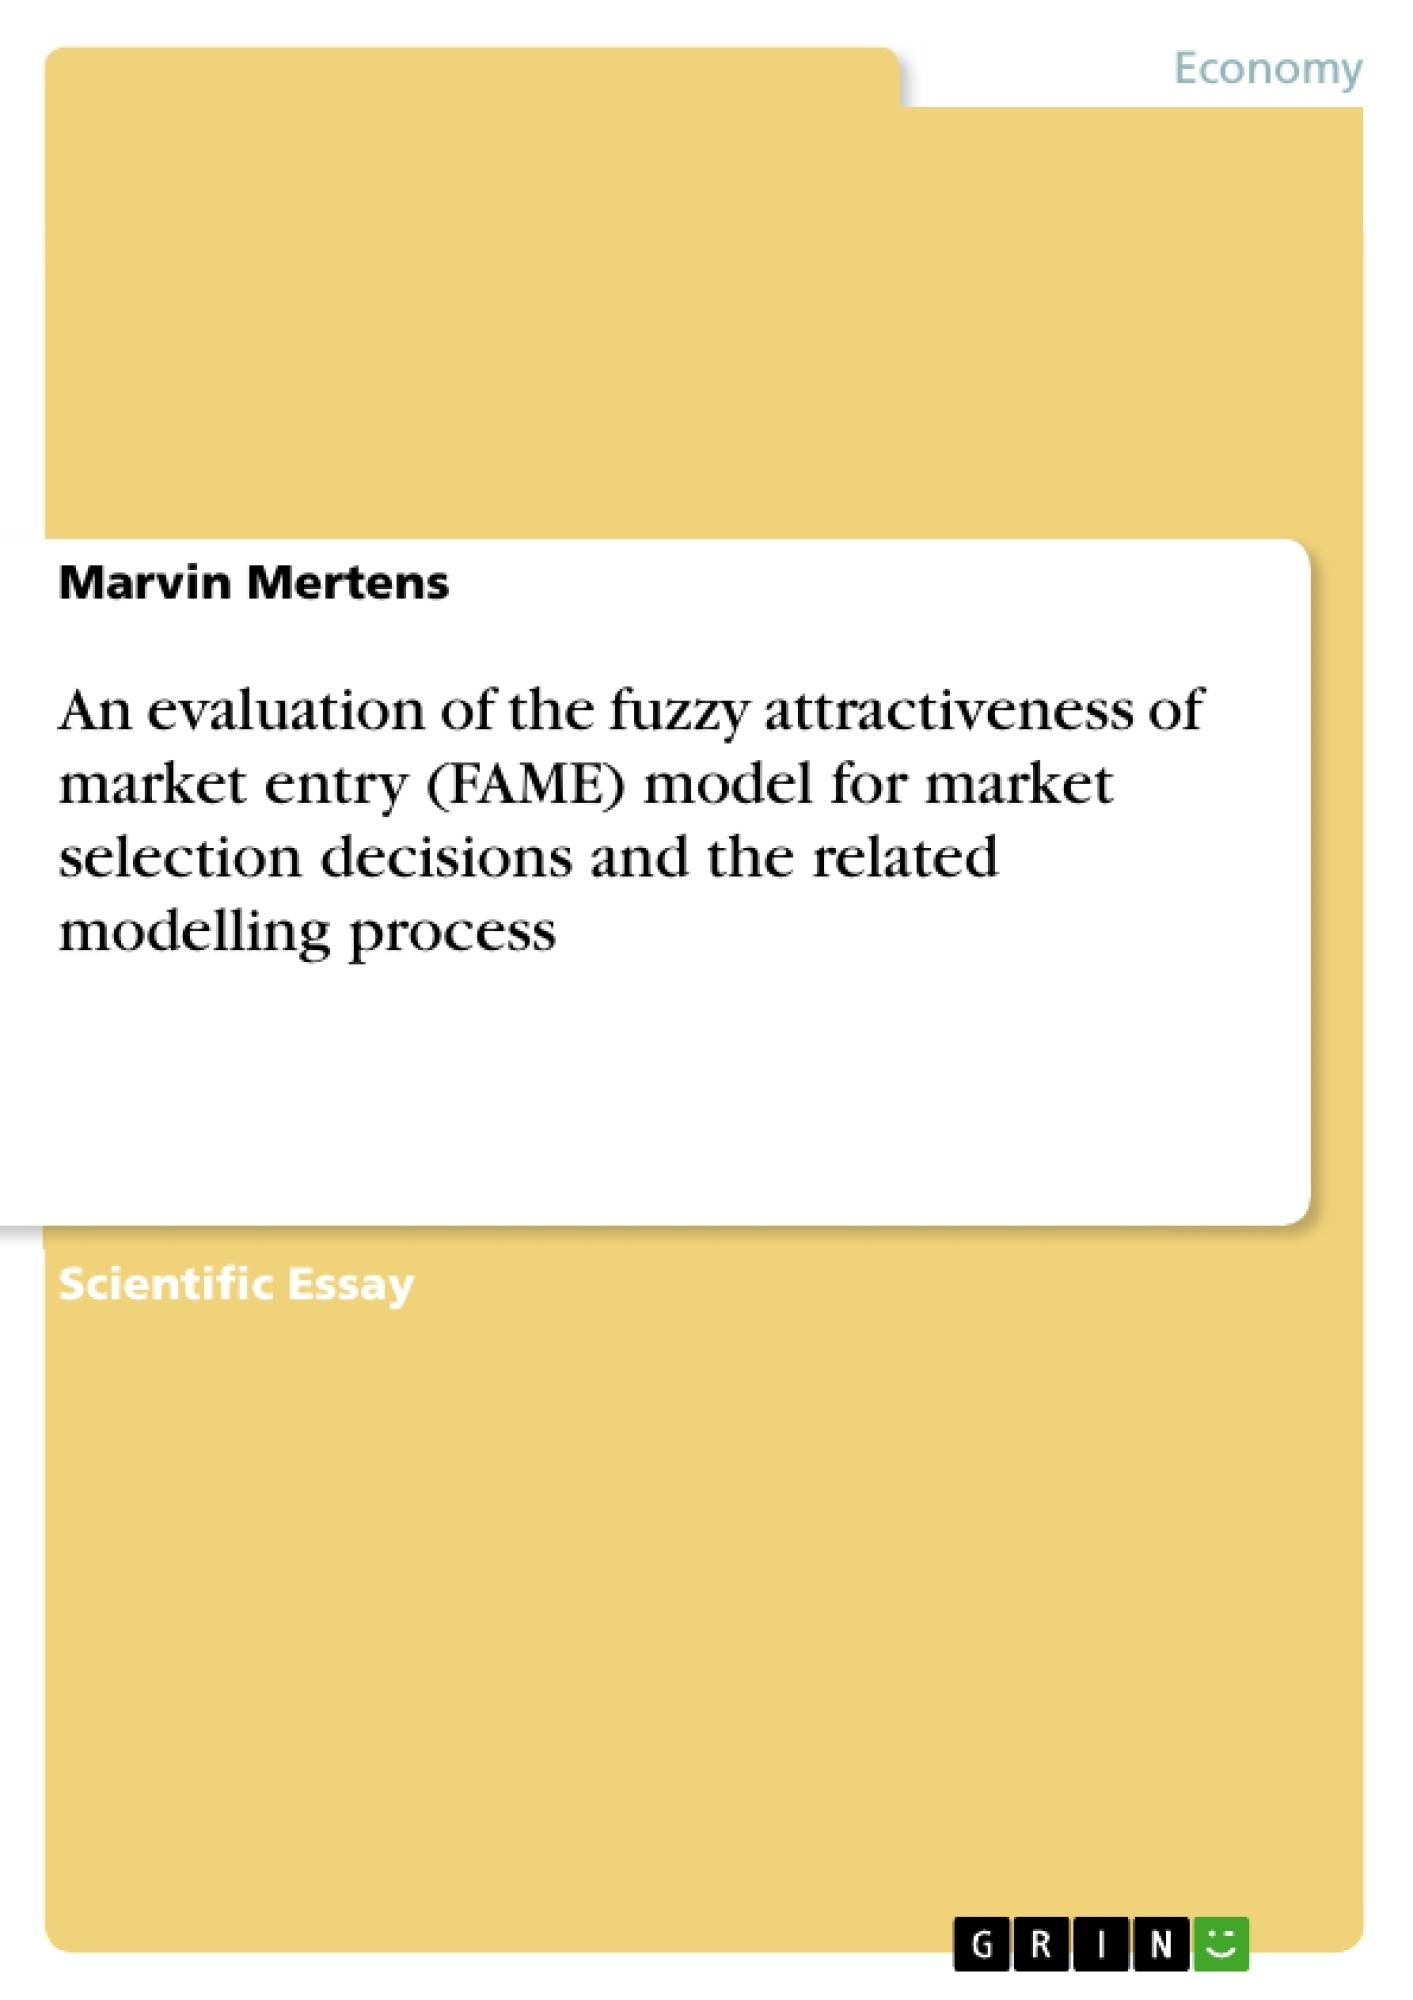 Title: An evaluation of the fuzzy attractiveness of market entry (FAME) model for market selection decisions and the related modelling process